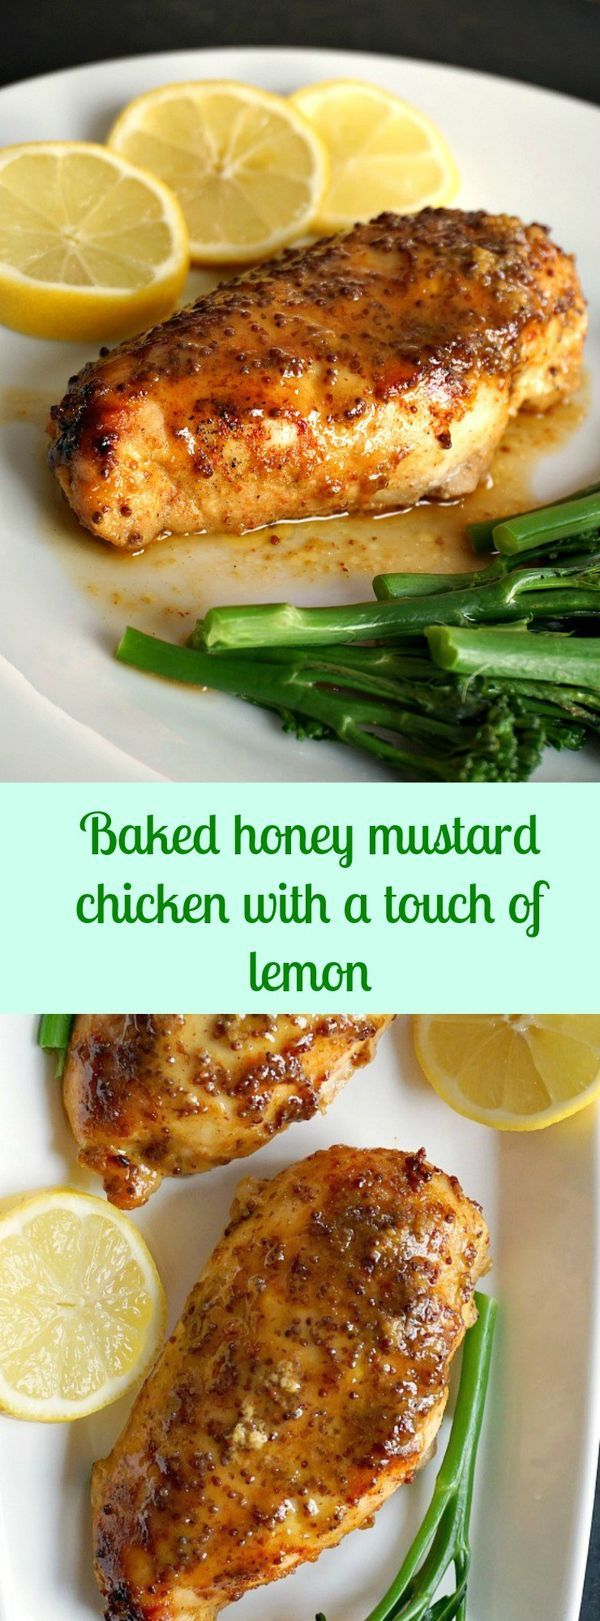 Baked honey mustard chicken breast with a touch of lemon | Recipe ...